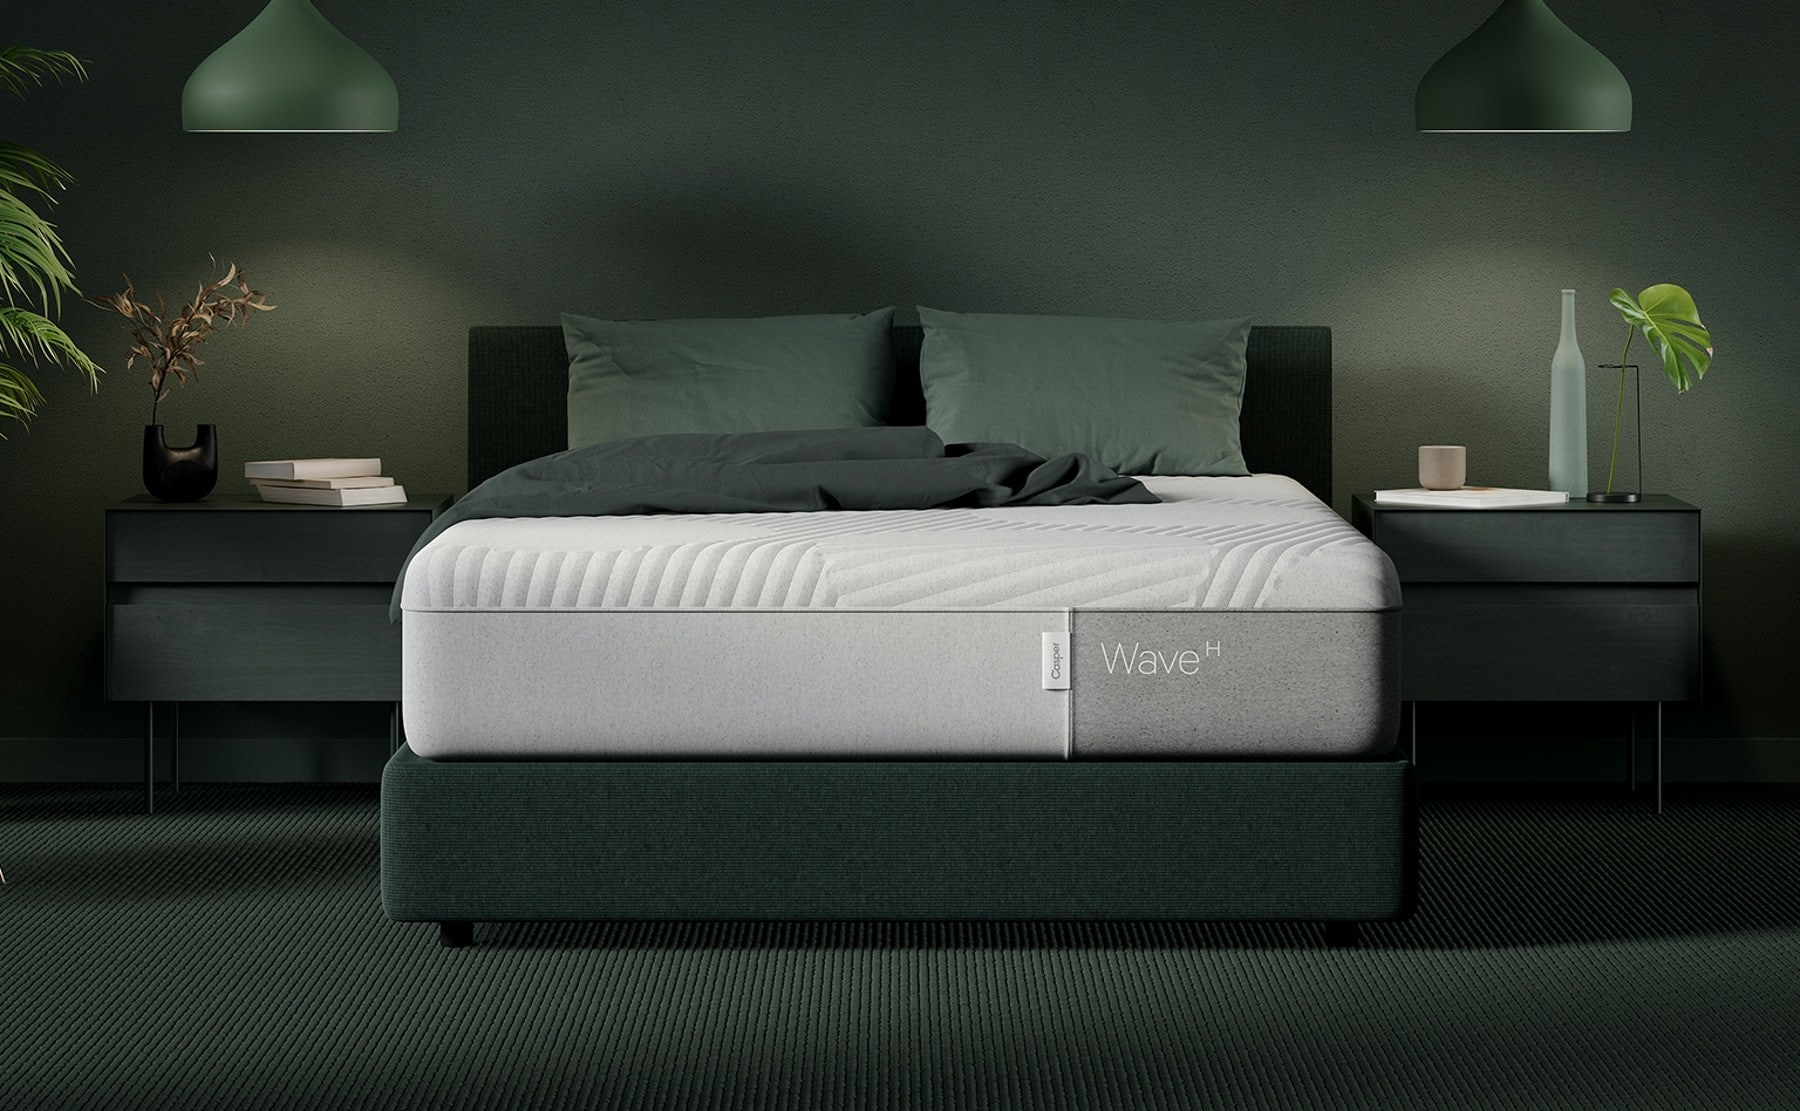 The Wave mattress